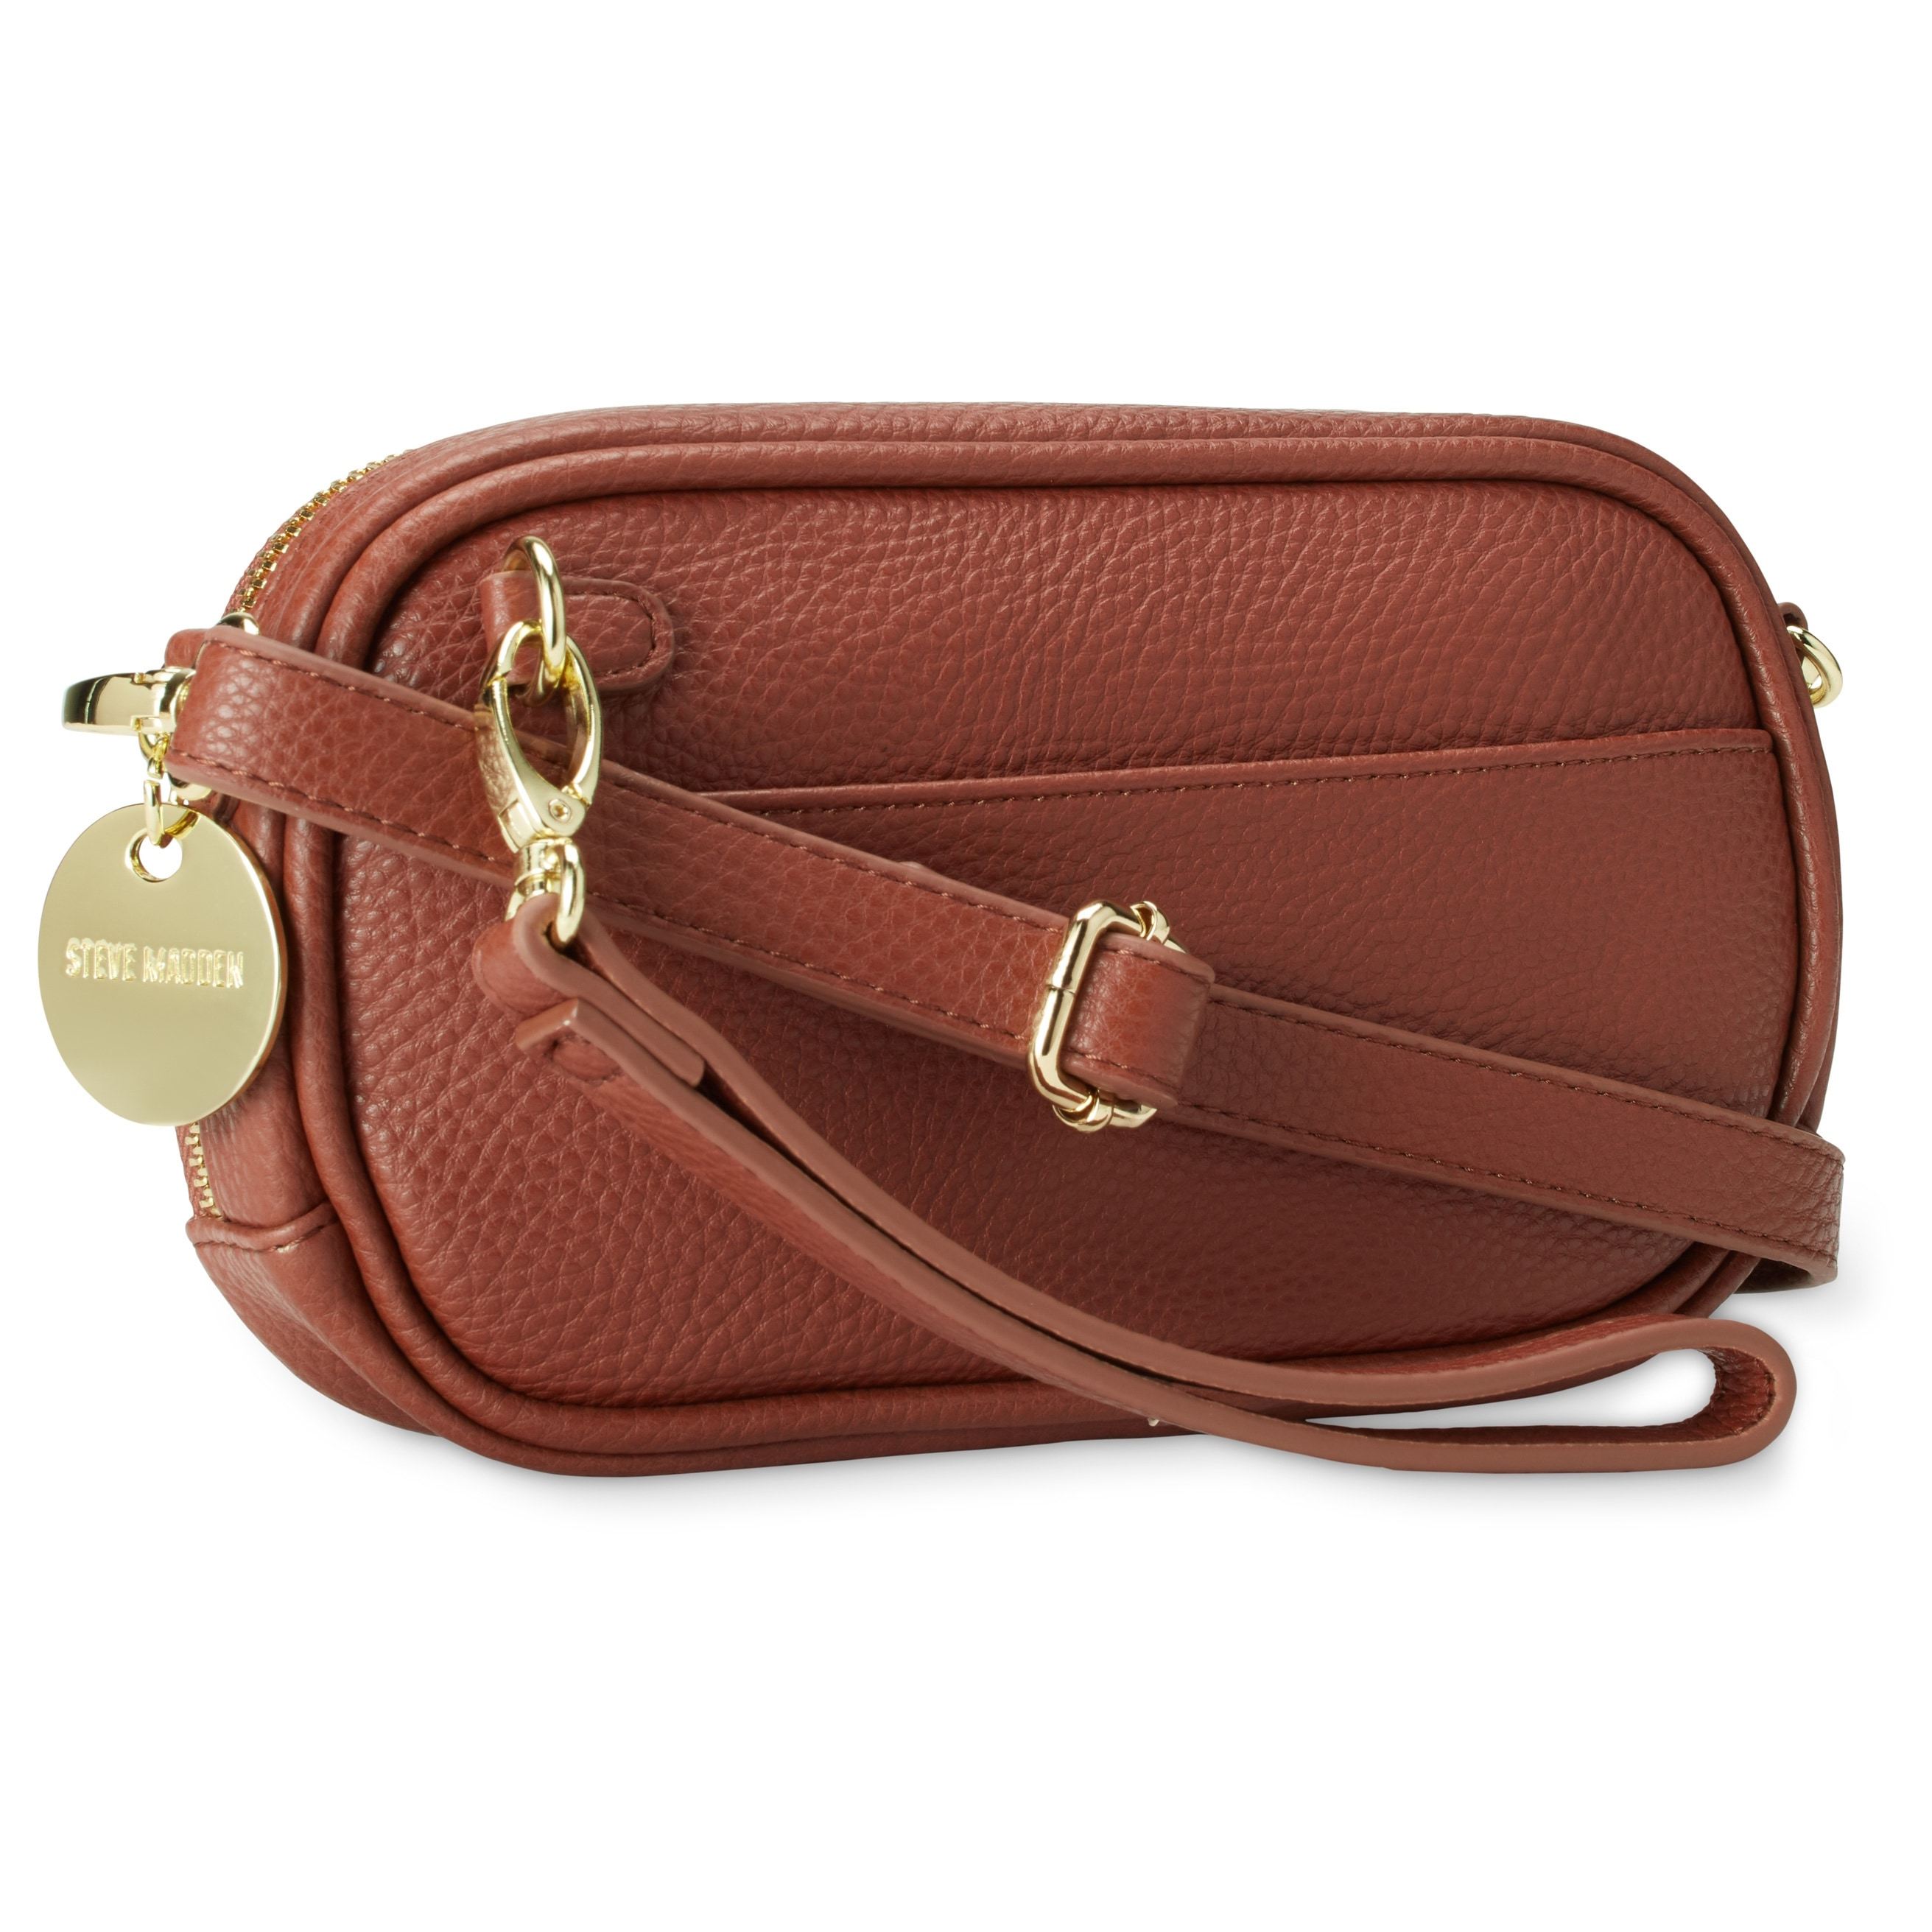 3eac3e9dc158 Shop Steve Madden BMagnolia Chevron Quilted Crossbody Handbag - Free  Shipping On Orders Over  45 - Overstock - 18000666